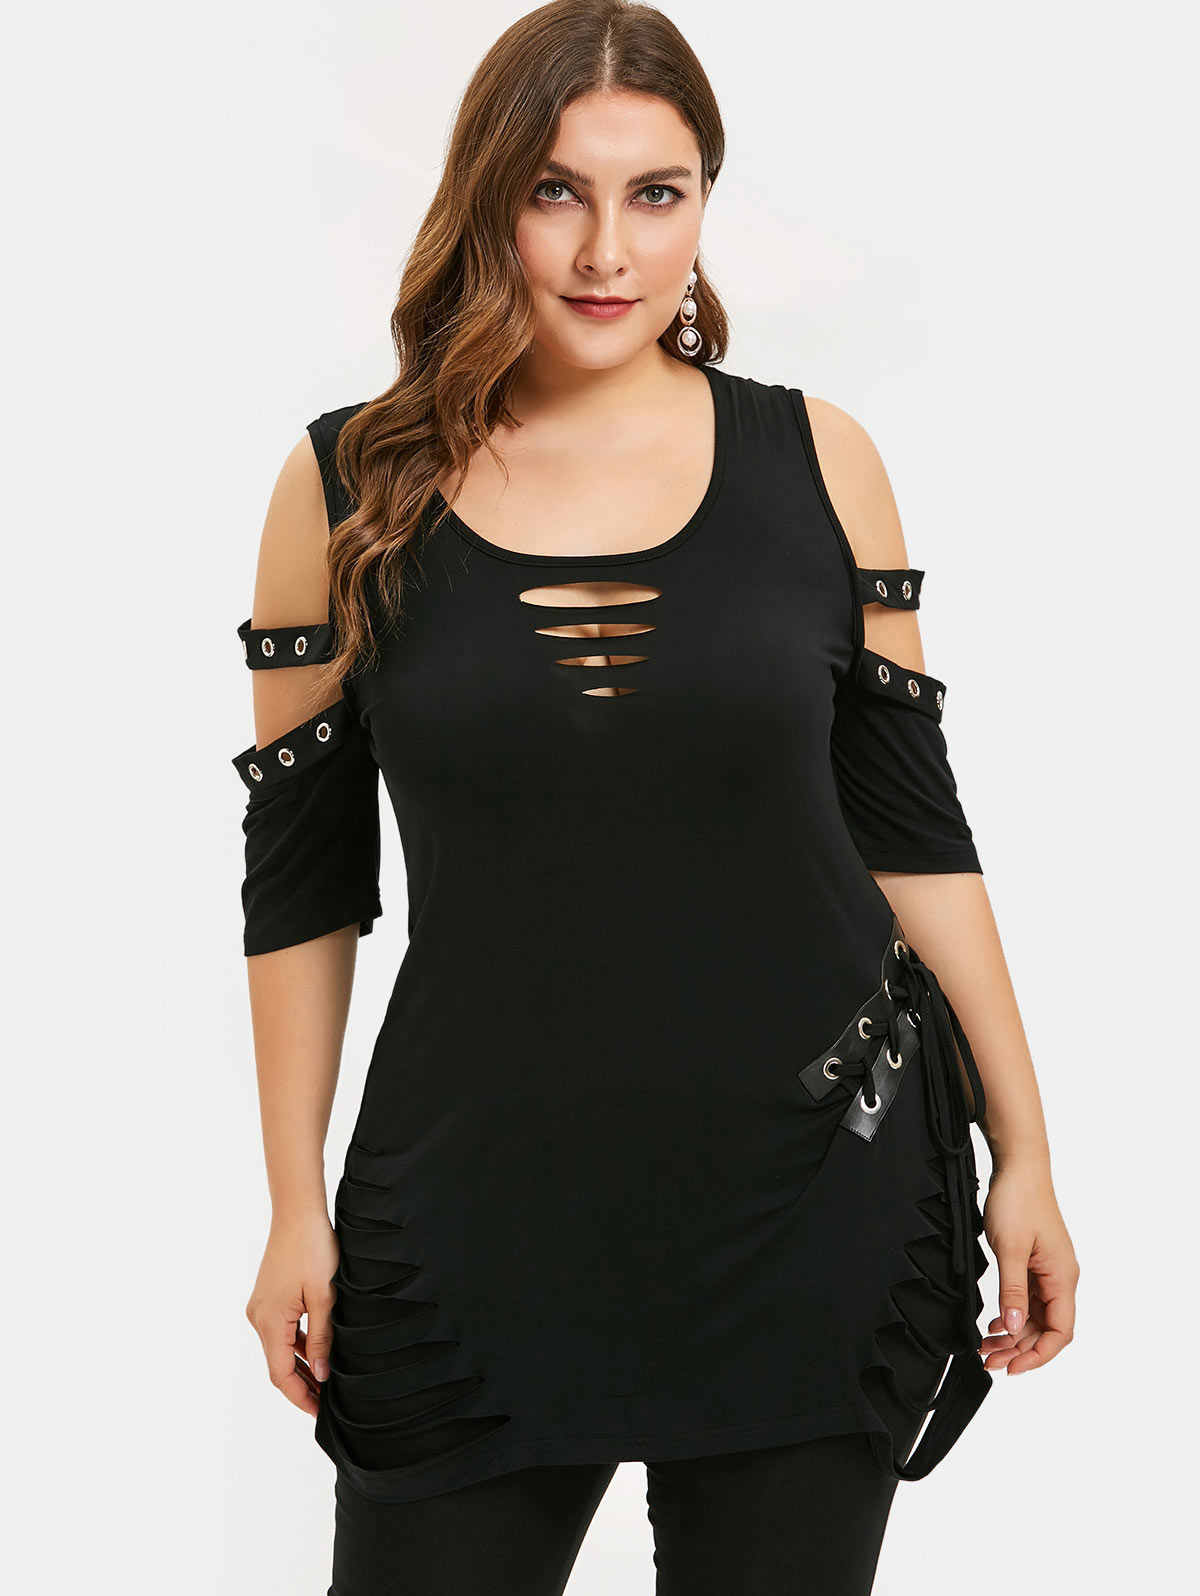 Wipalo Plus Size Cold Shoulder Lace Up Ripped T-Shirt Long Scoop Neck Cut Out Women T-Shirts Solid Gothic Summer Sexy Tees 2019